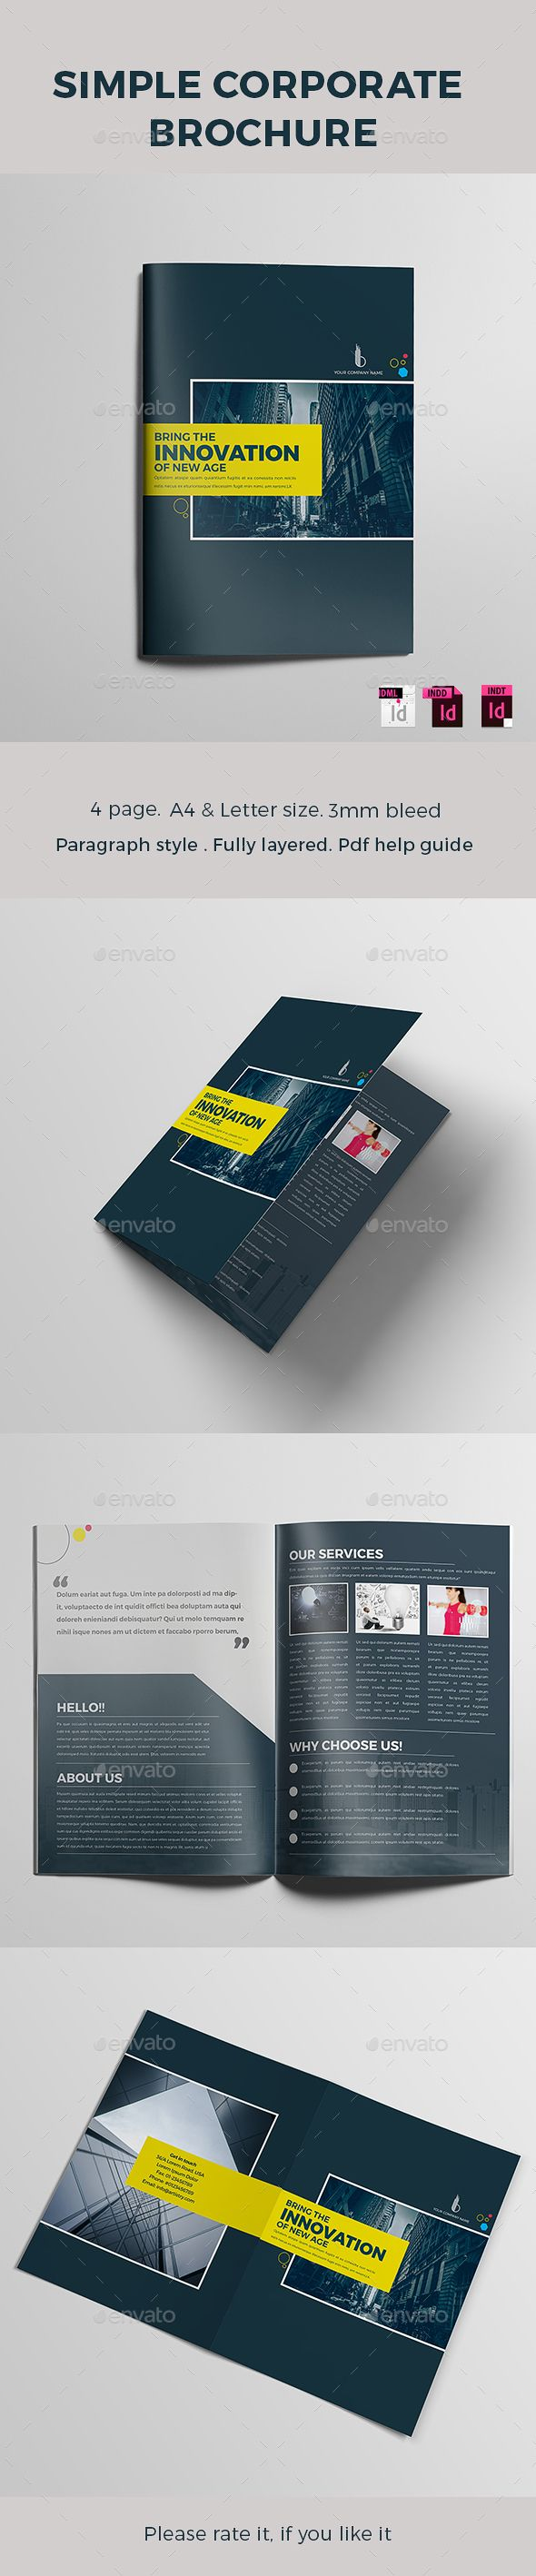 Simple Corporate Brochure Template InDesign INDD. Download here…